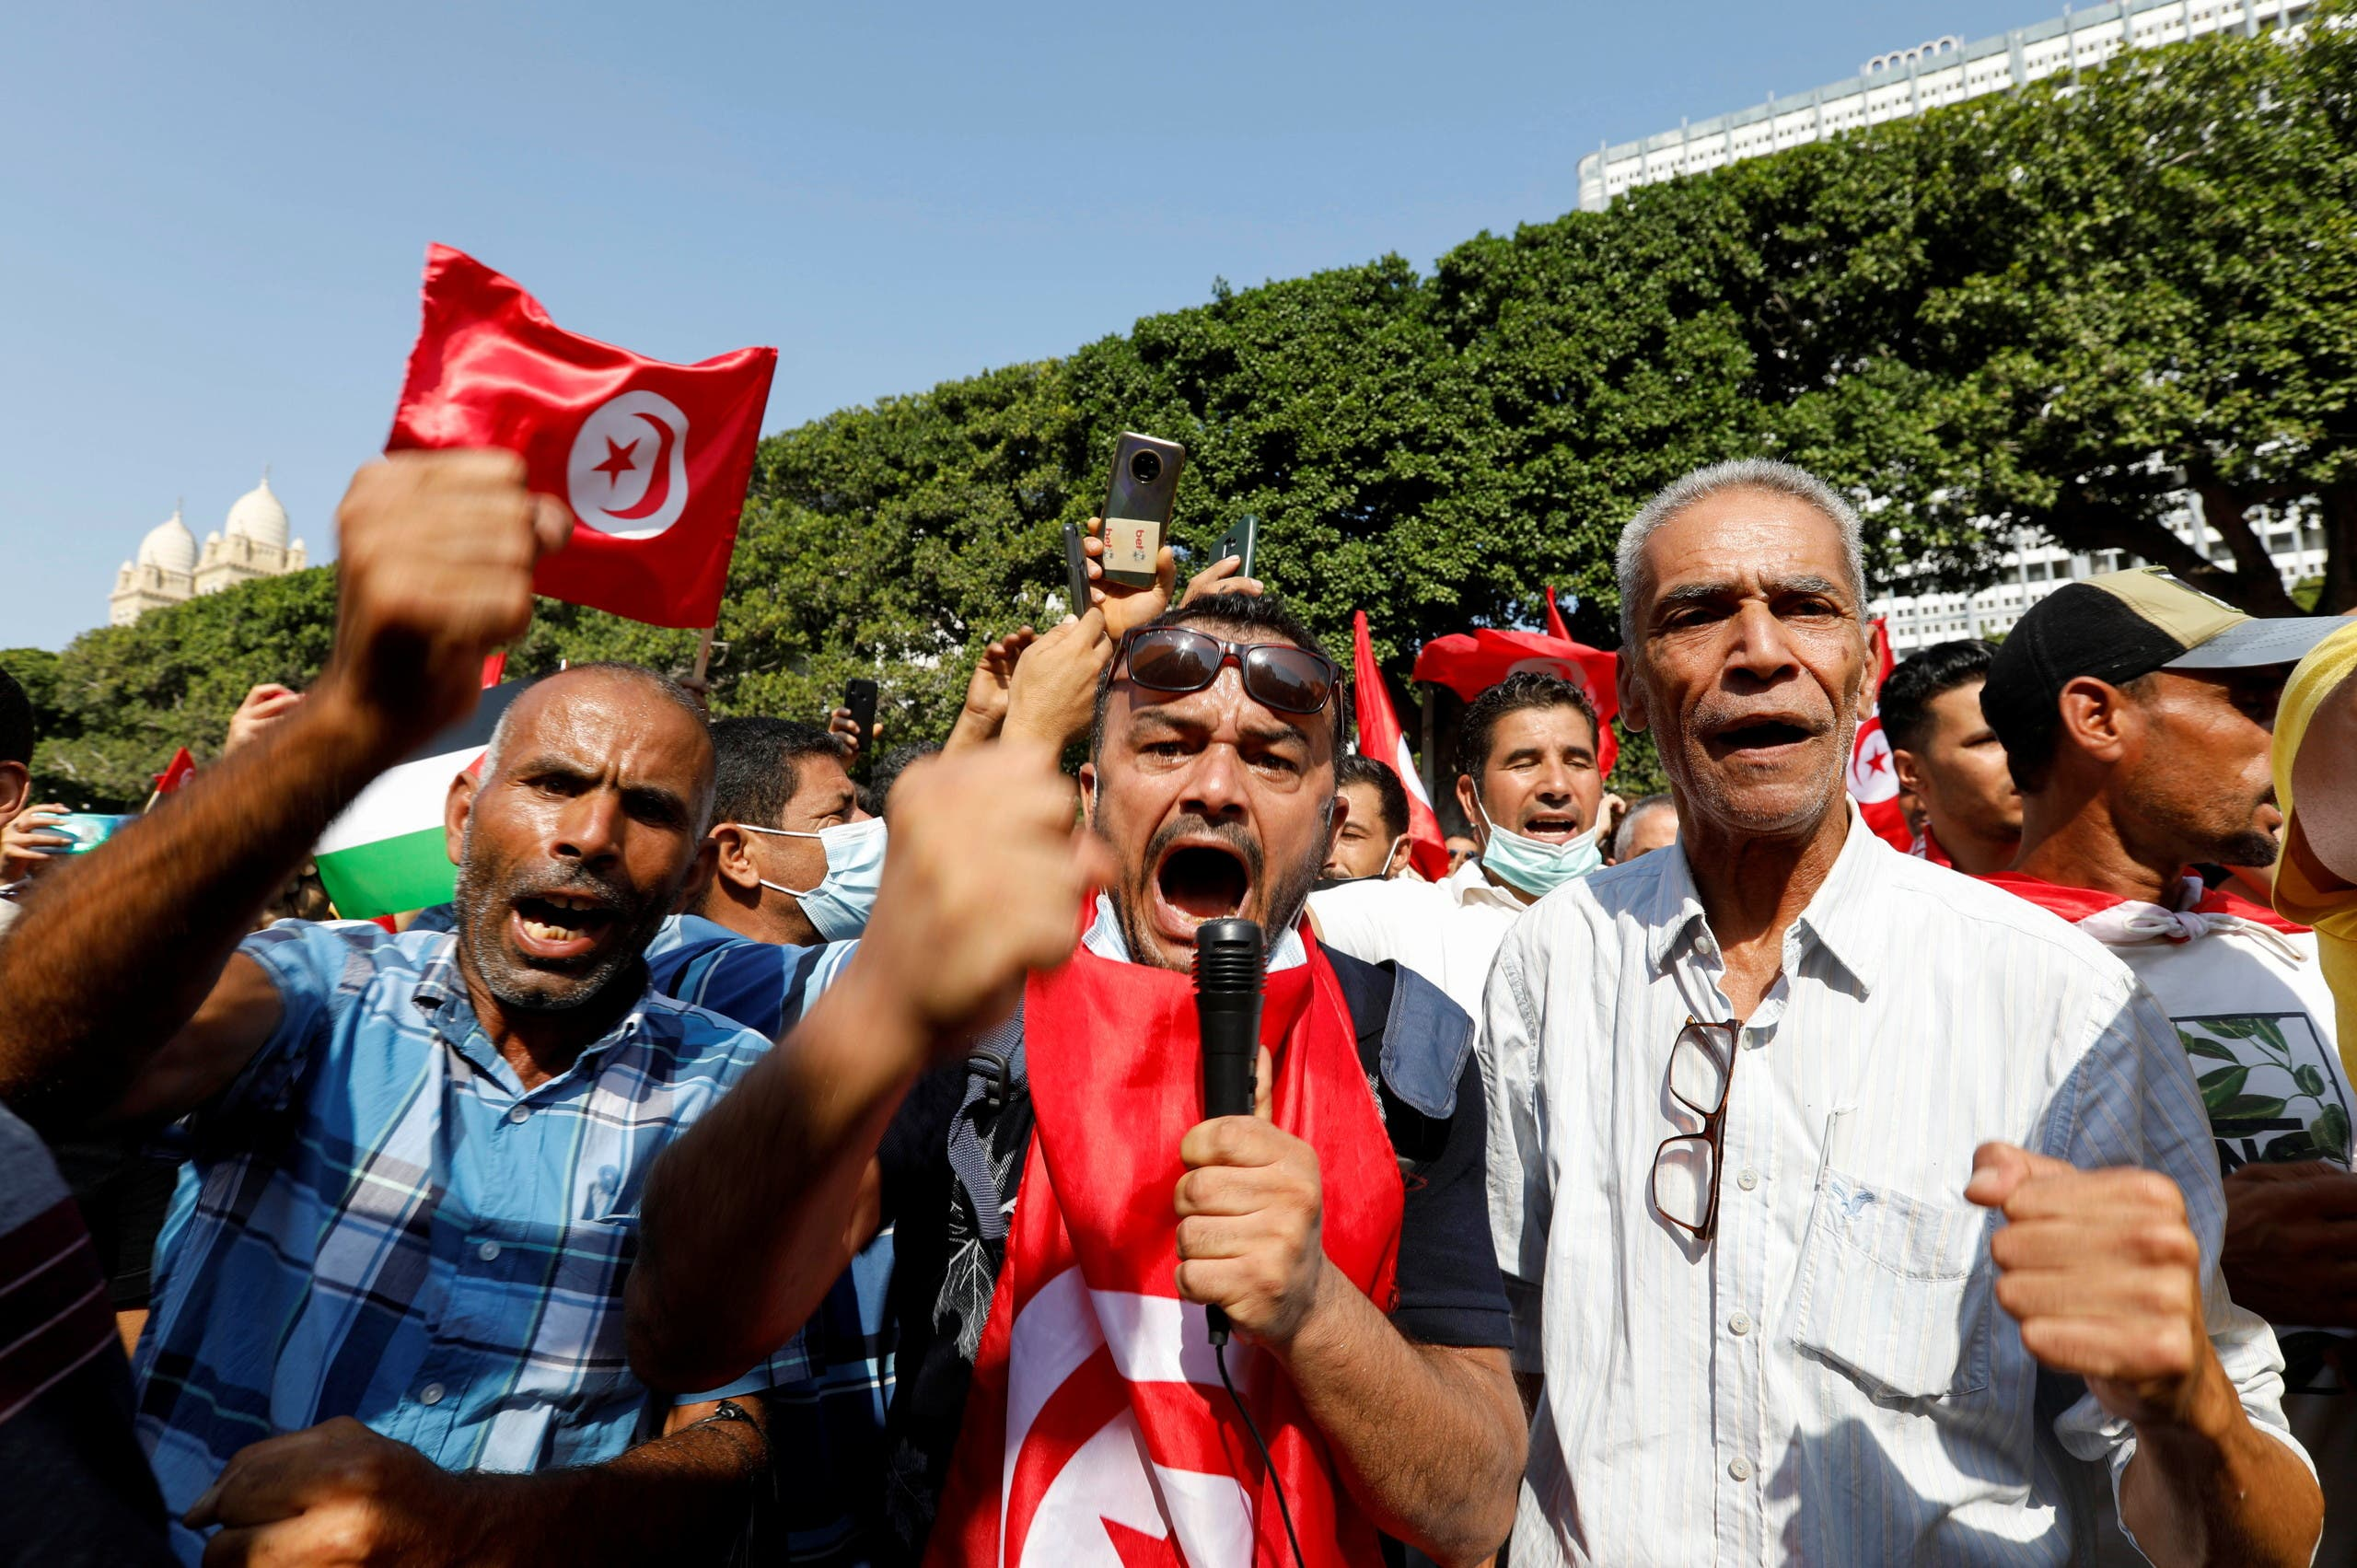 Supporters of Tunisian President Kais Saied rally in support of his seizure of power and suspension of parliament, in Tunis, Tunisia, October 3, 2021. REUTERS/Zoubeir Souissi